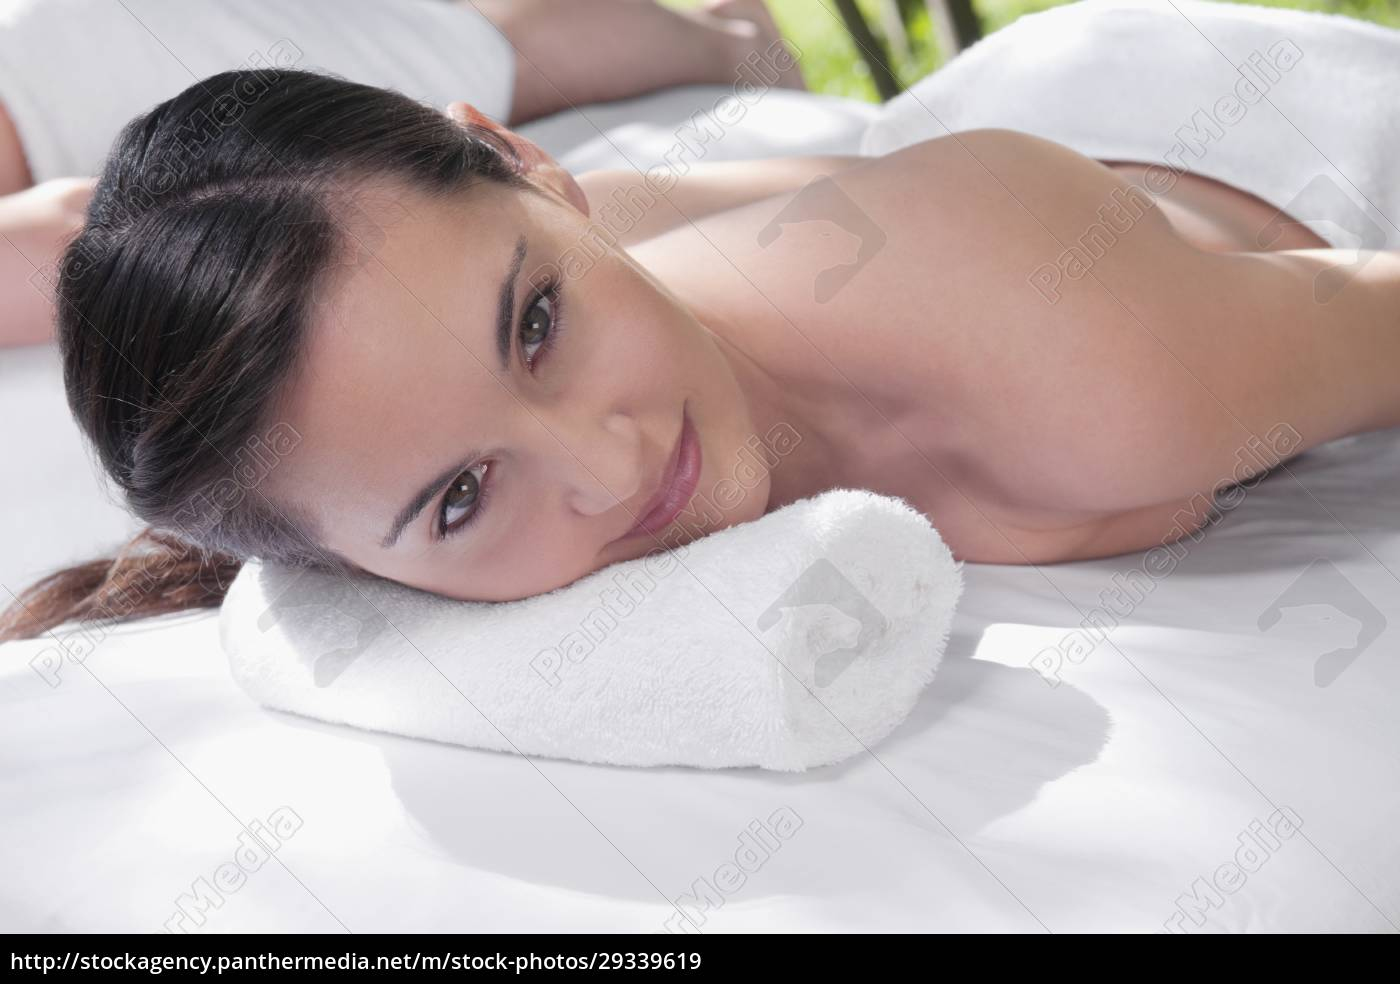 woman, lying, on, a, massage, table - 29339619